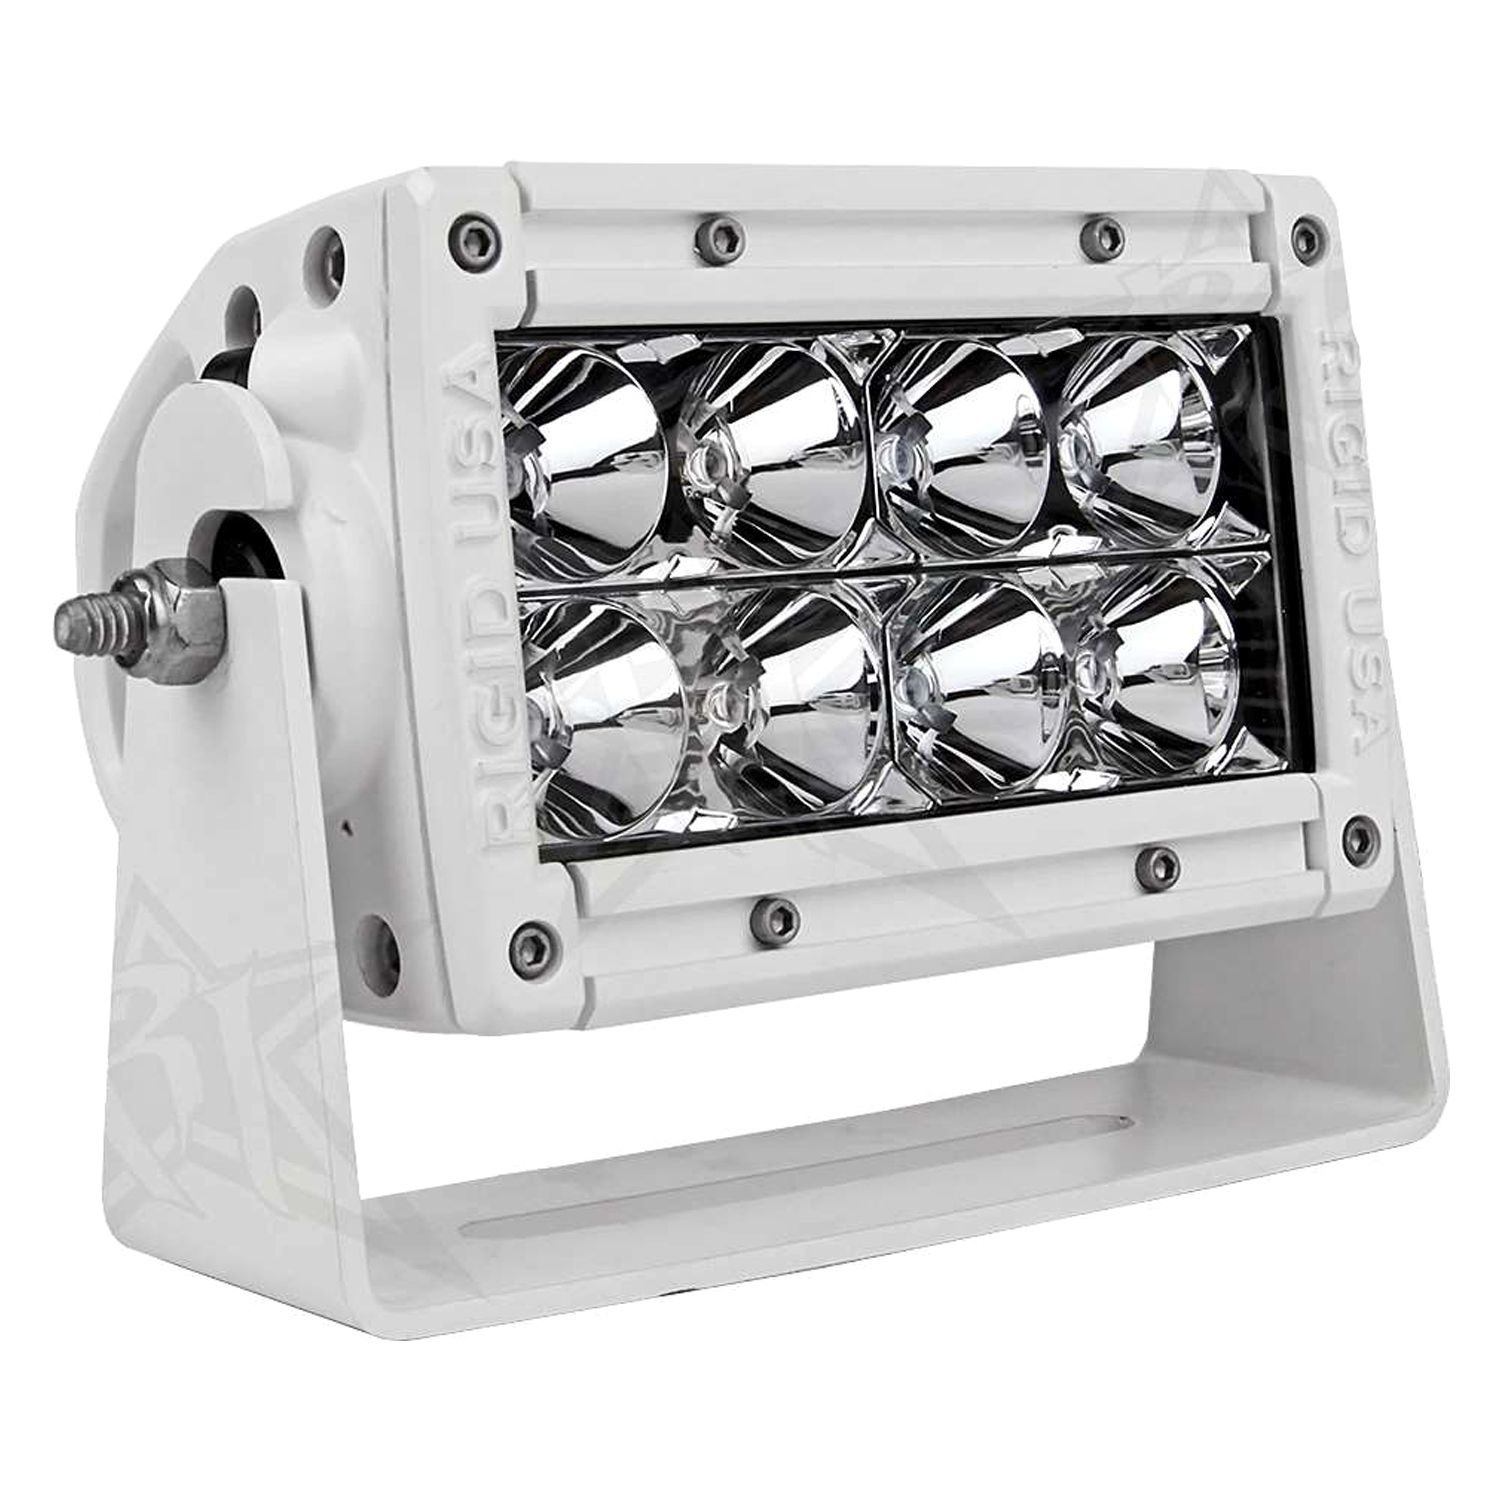 Rigid industries cradle mount for e series led light bar industries white powder coat cradle mount for 4 e series led light barrigid aloadofball Images